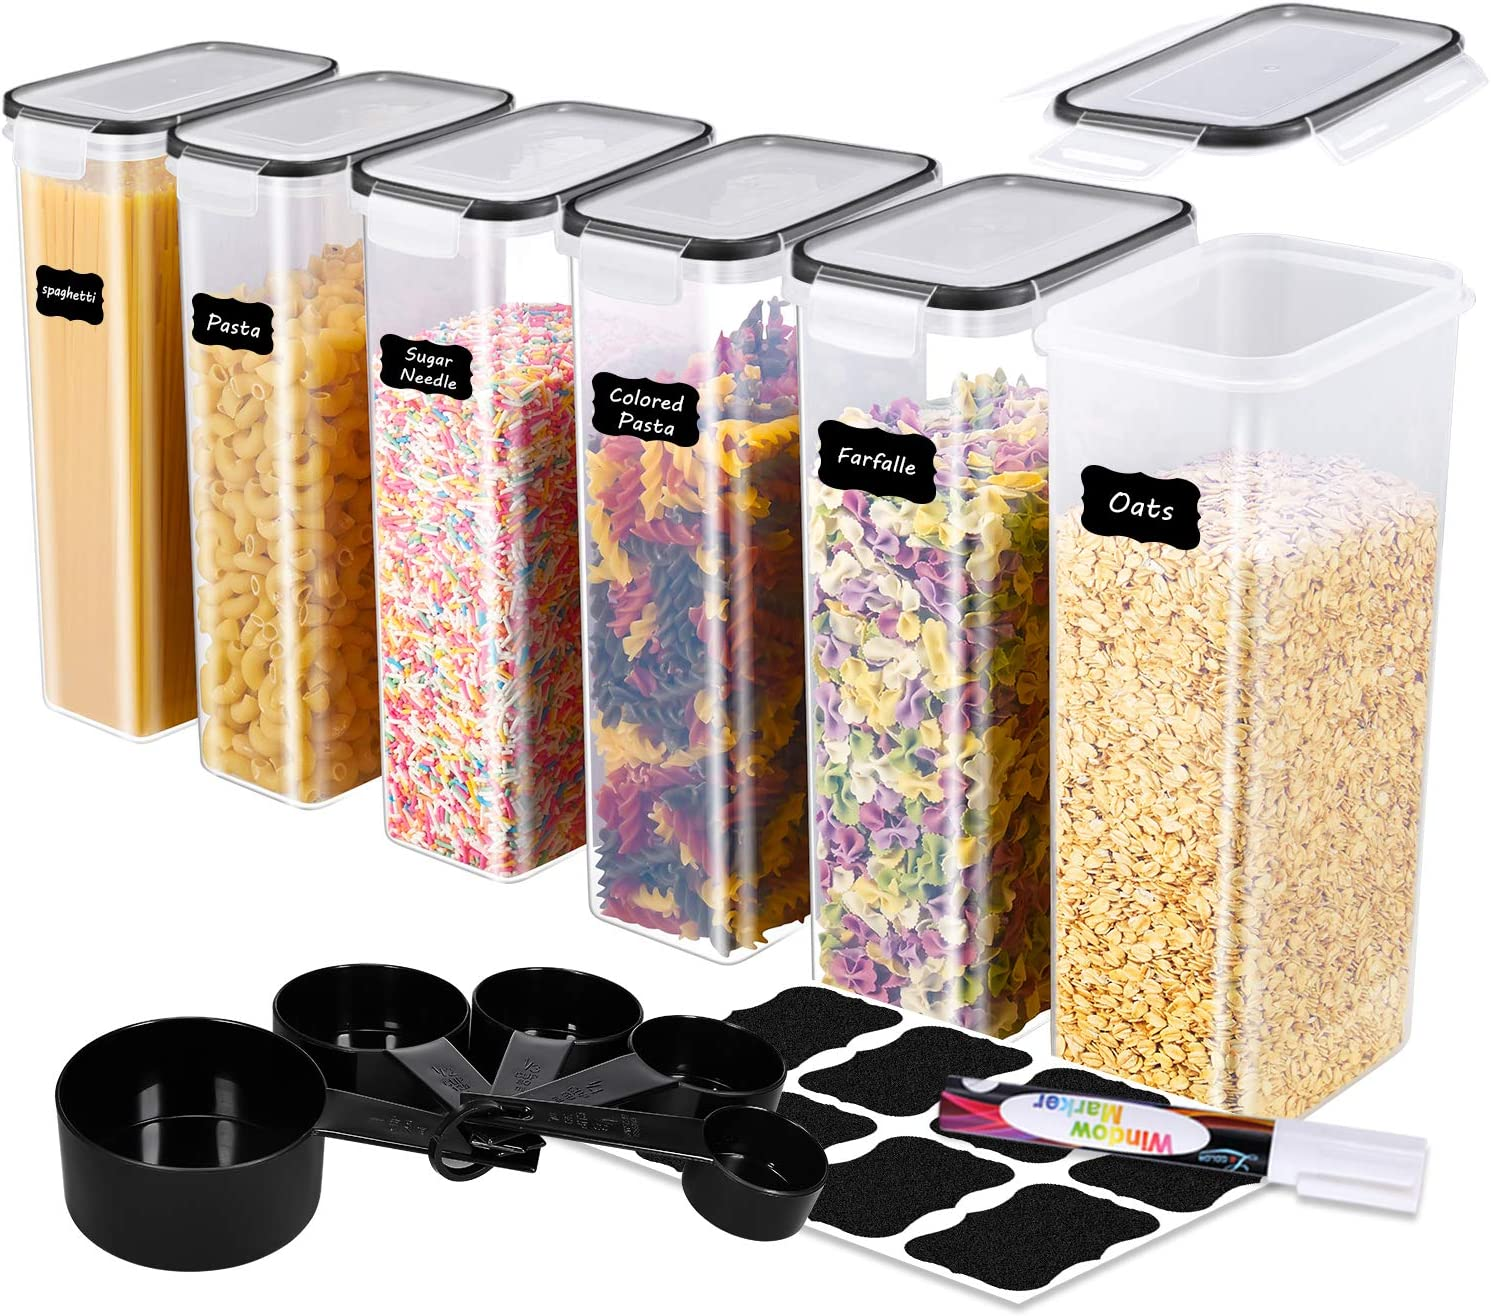 ME.FAN Food Storage Containers [Set of 6] Airtight Storage Keeper-Spaghetti Canisters 2.8L(94.7oz) with 5 Set Measuring Cups 24 Chalkboard labels & Pen-Black